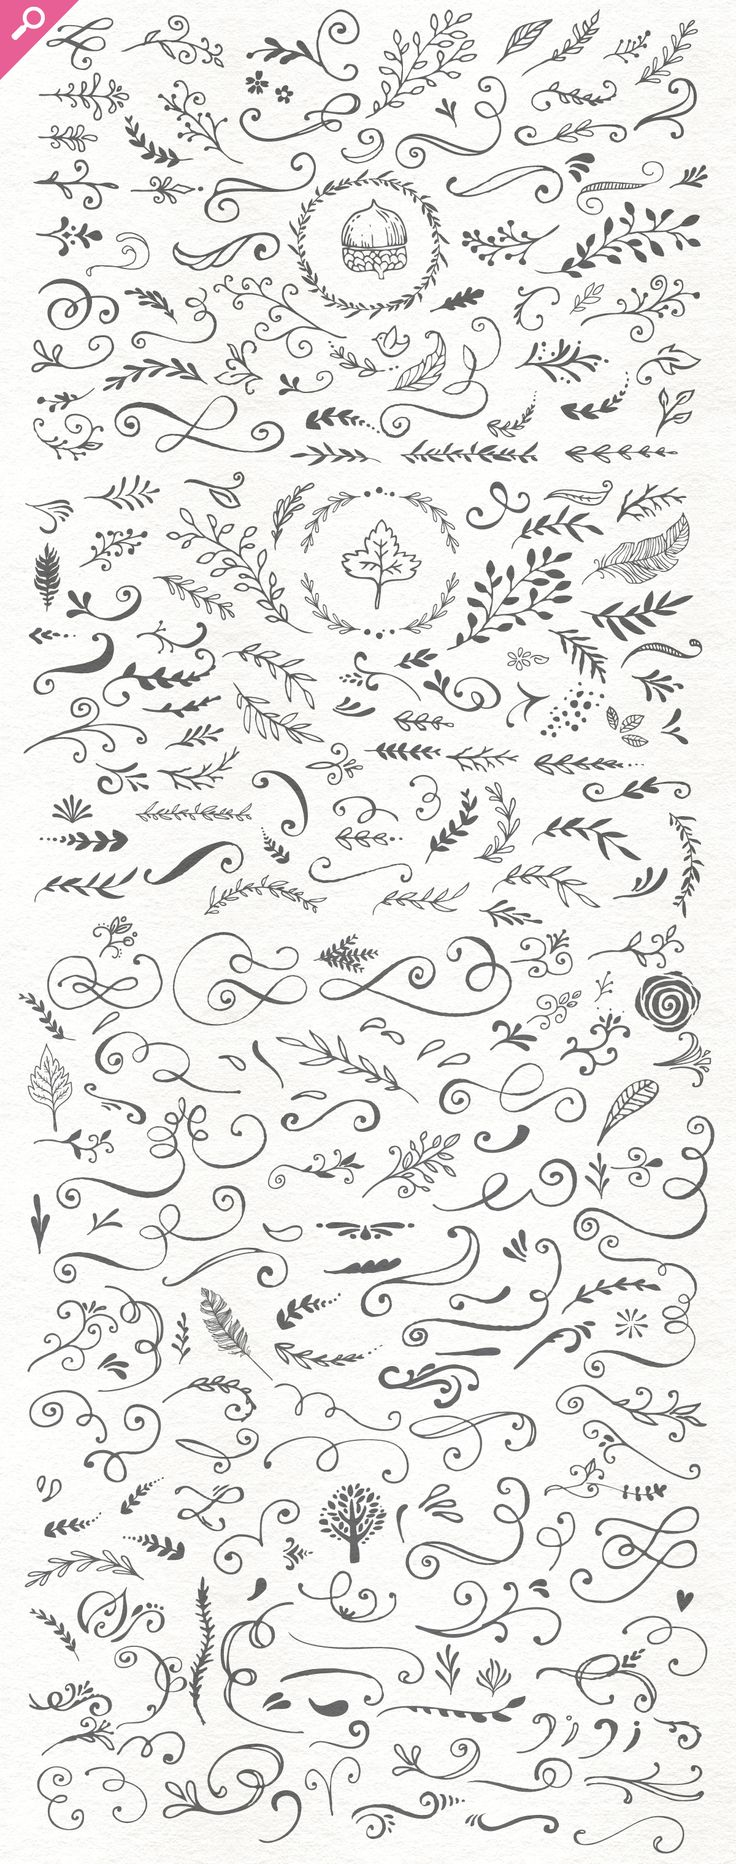 The Handsketched Designers Kit - Illustrations  #doodles